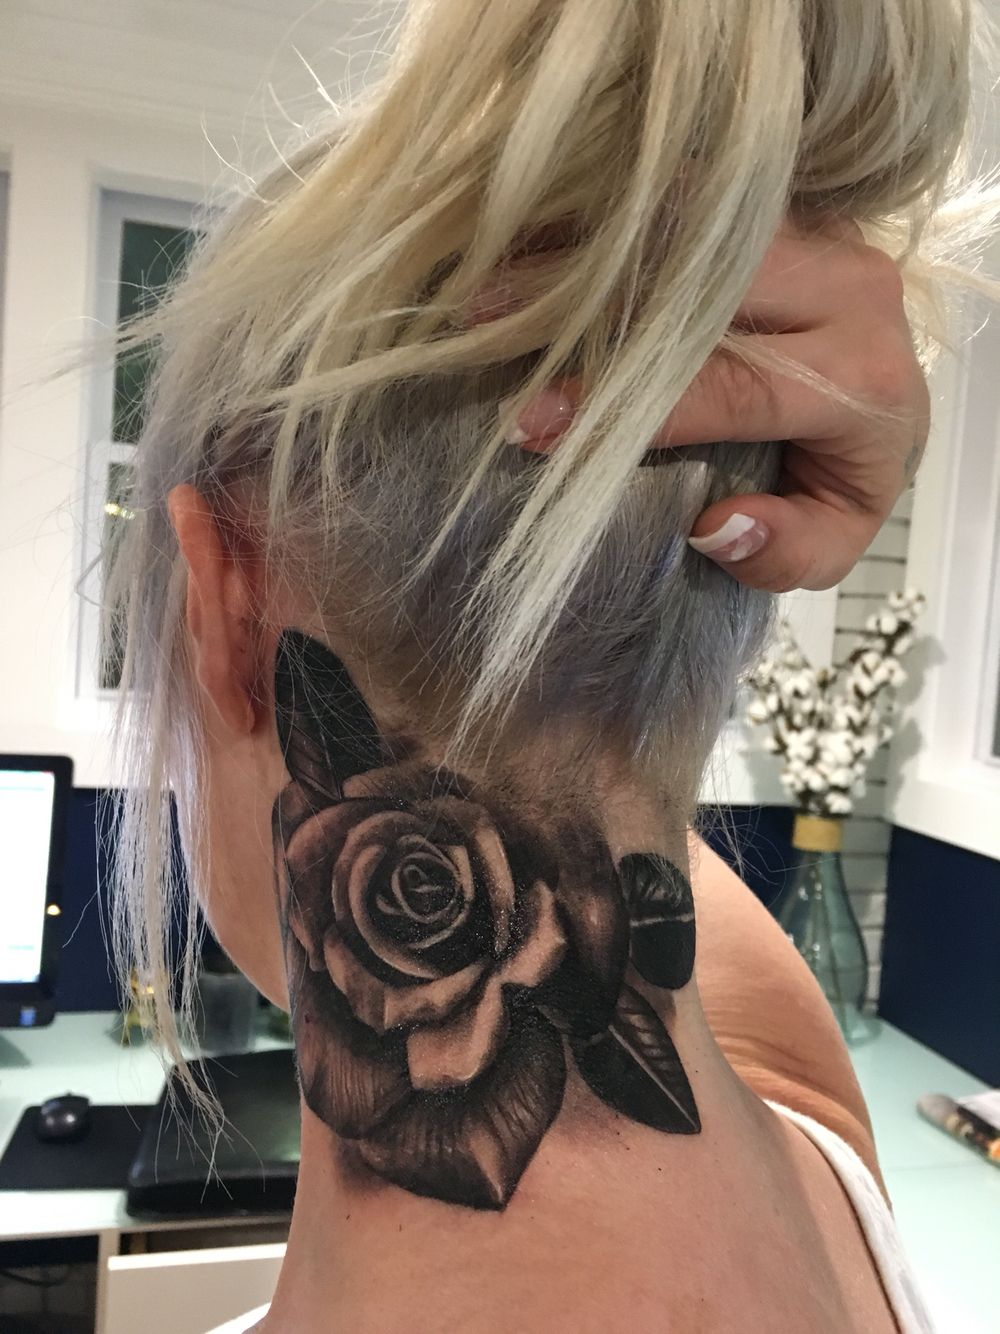 Rose neck tattoo black and white rose tattoo Rose neck